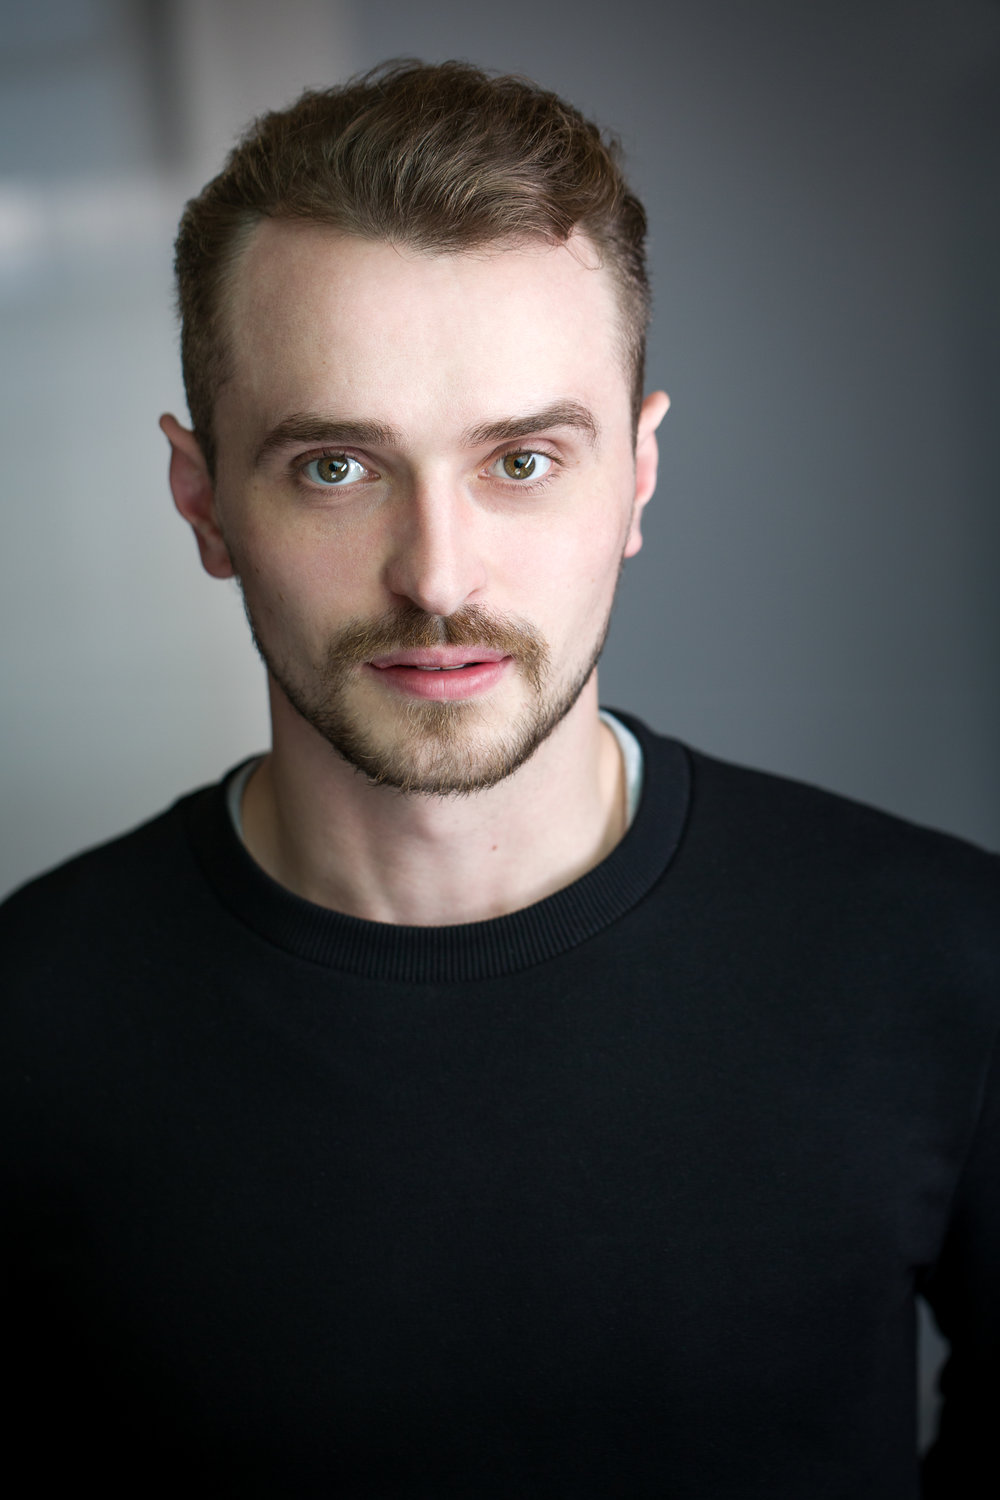 Ben Woodhall - Wayne  Ben graduated from the Drama Centre on the BA course. He has since been working, predominantly in the theatre, most notably in a national tour of  'A View from the Bridge' , dir. by Stephen Unwin. He has most recently appeared in the lead role of a sell out run of  'The Soul of Wittgenstein' at the Kings Head Theatre, for which he received 5 star reviews. Ben has also competed in 3 Monologue Slams, performing self penned pieces, one of which has been selected to be made into a short film, which he is shooting next month. He is represented by Carol Spencer at Brynmoor Associates.